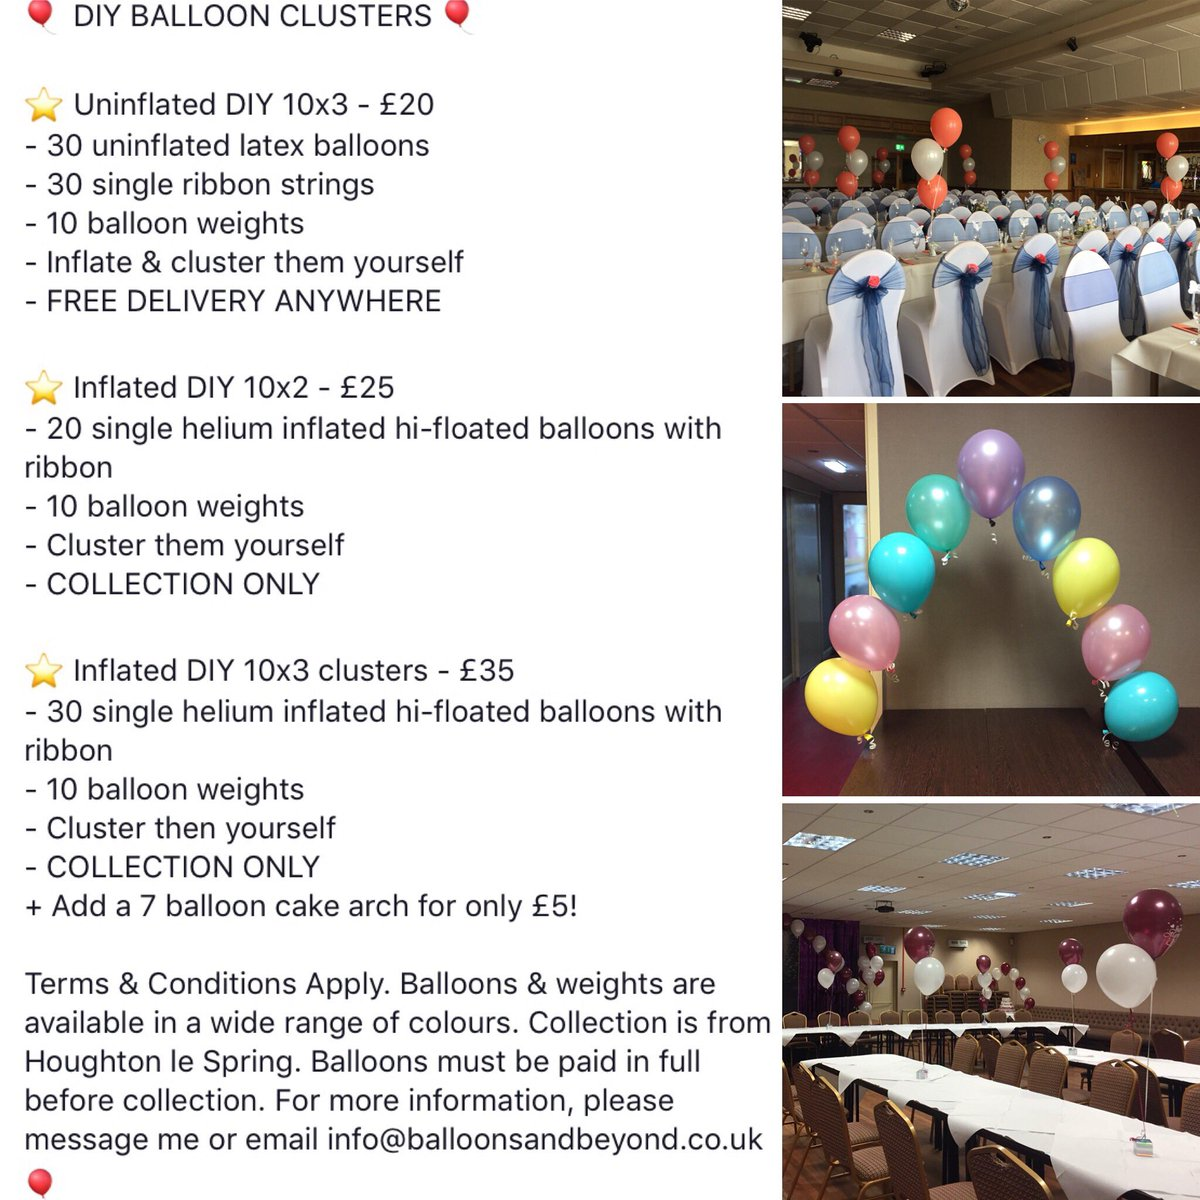 Save money on good quality balloons by clustering them yourself & taking them to your venue! #balloons #balloonpackages #savemoney #deal #offer #money ...